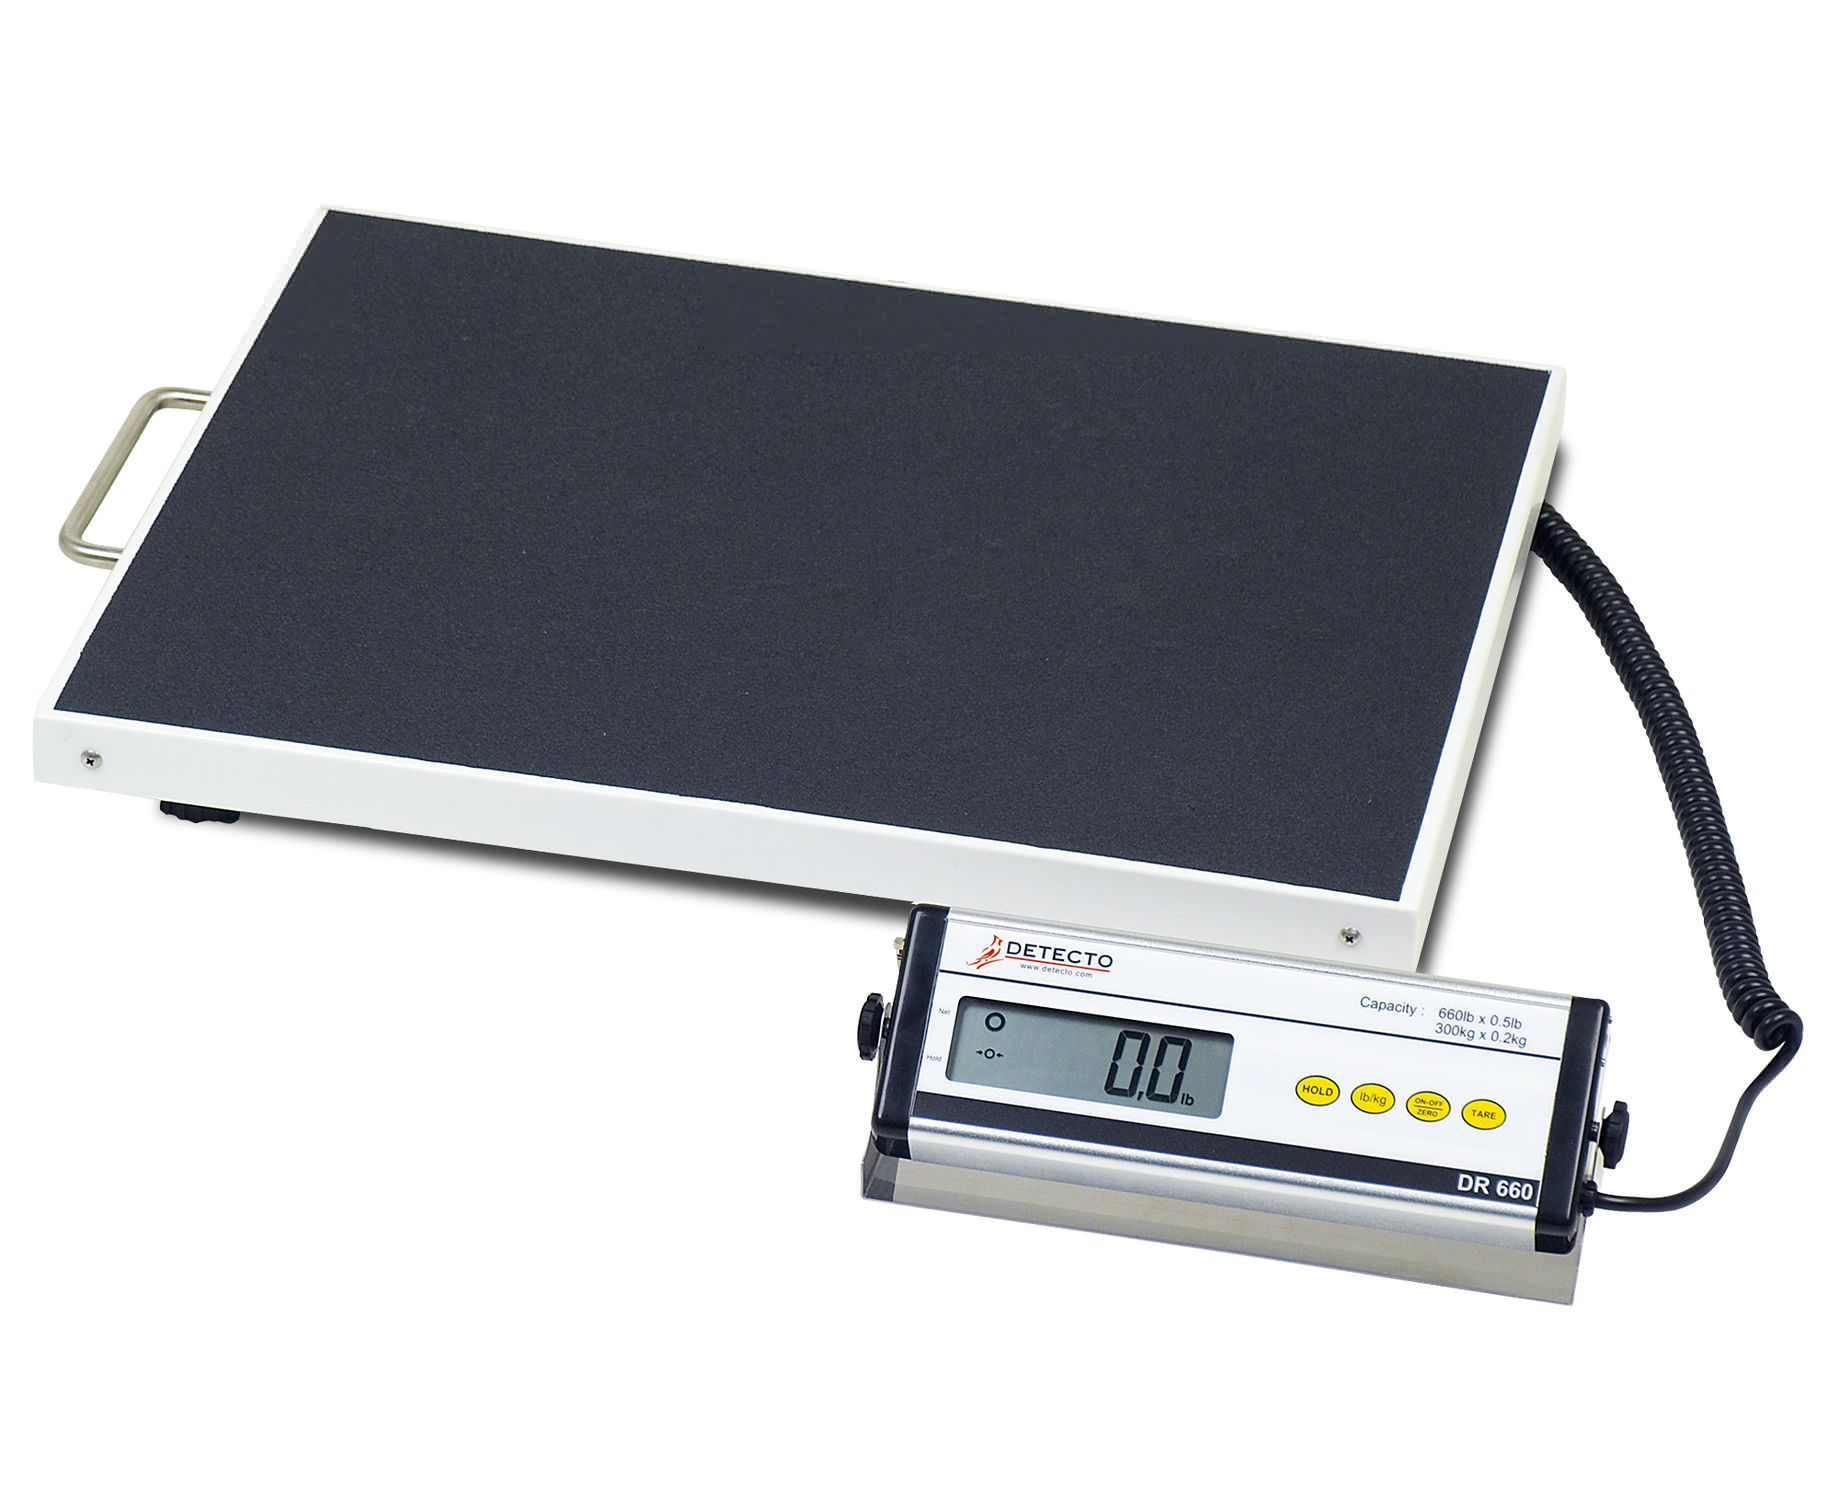 electronic patient weighing scales bariatric with lcd display with mobile display dr660 detecto - Detecto Scales